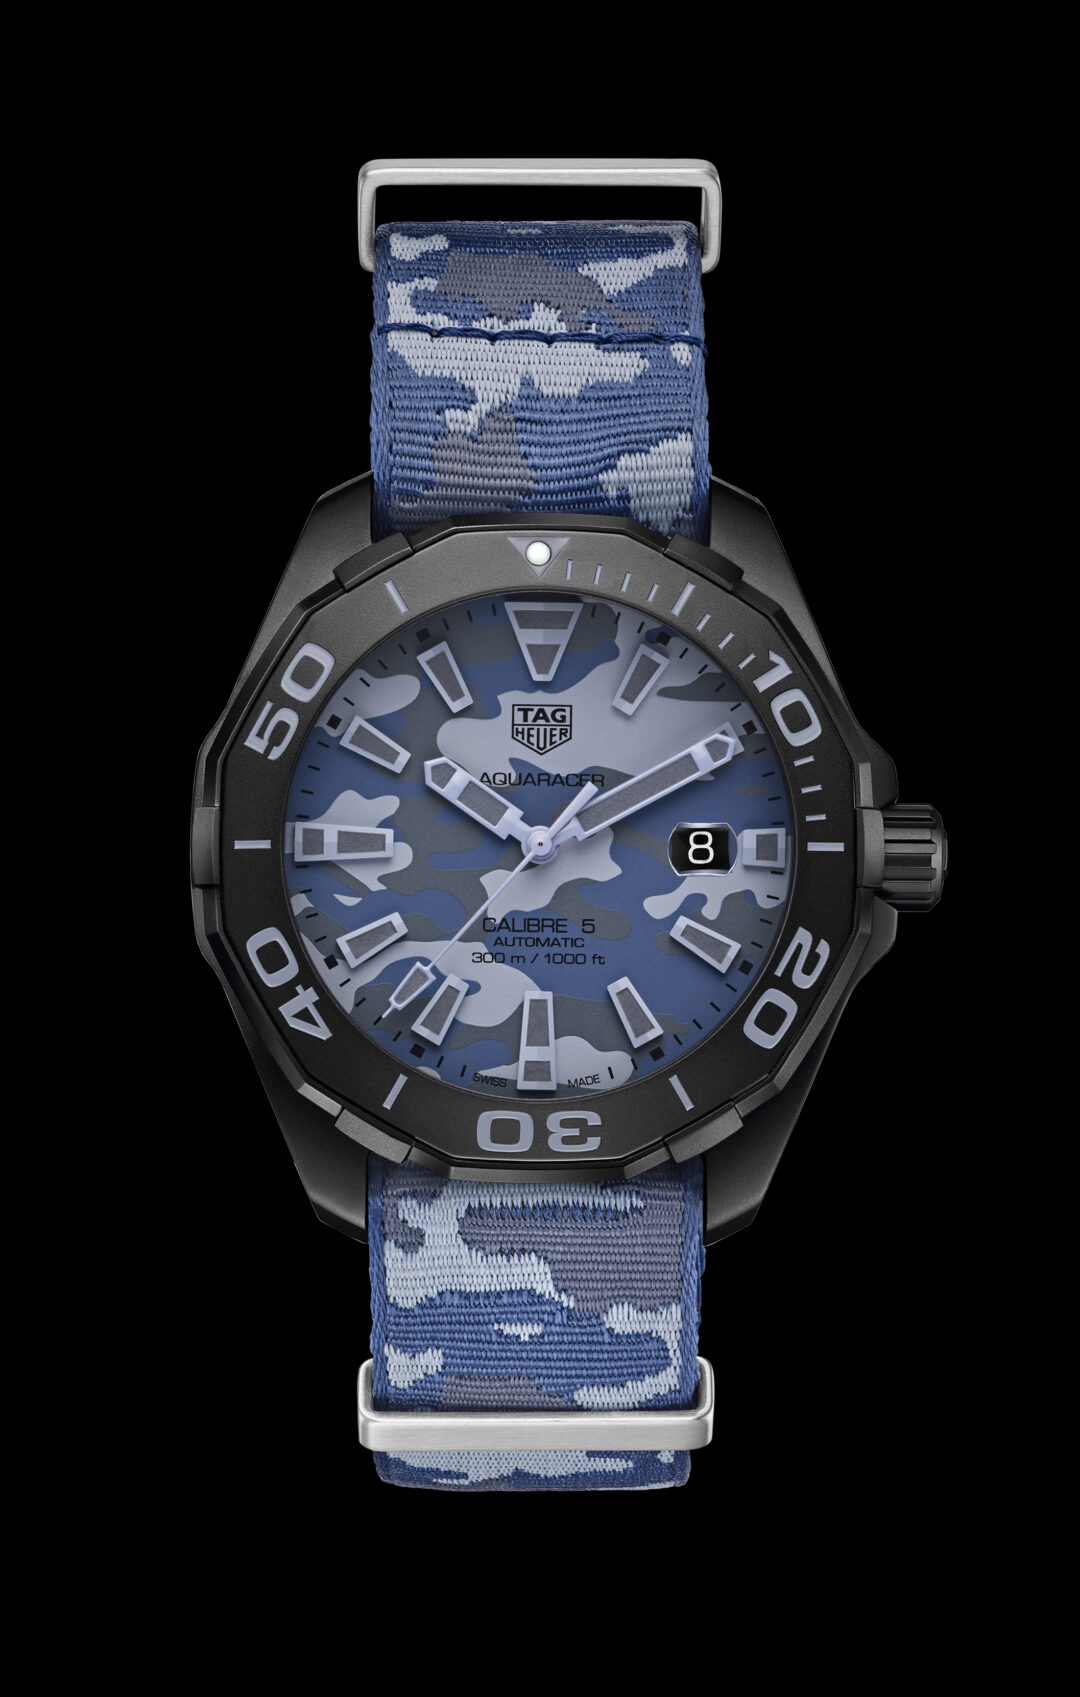 TAG Heuer AQUARACER Camouflage 300 Metres – Calibre 5